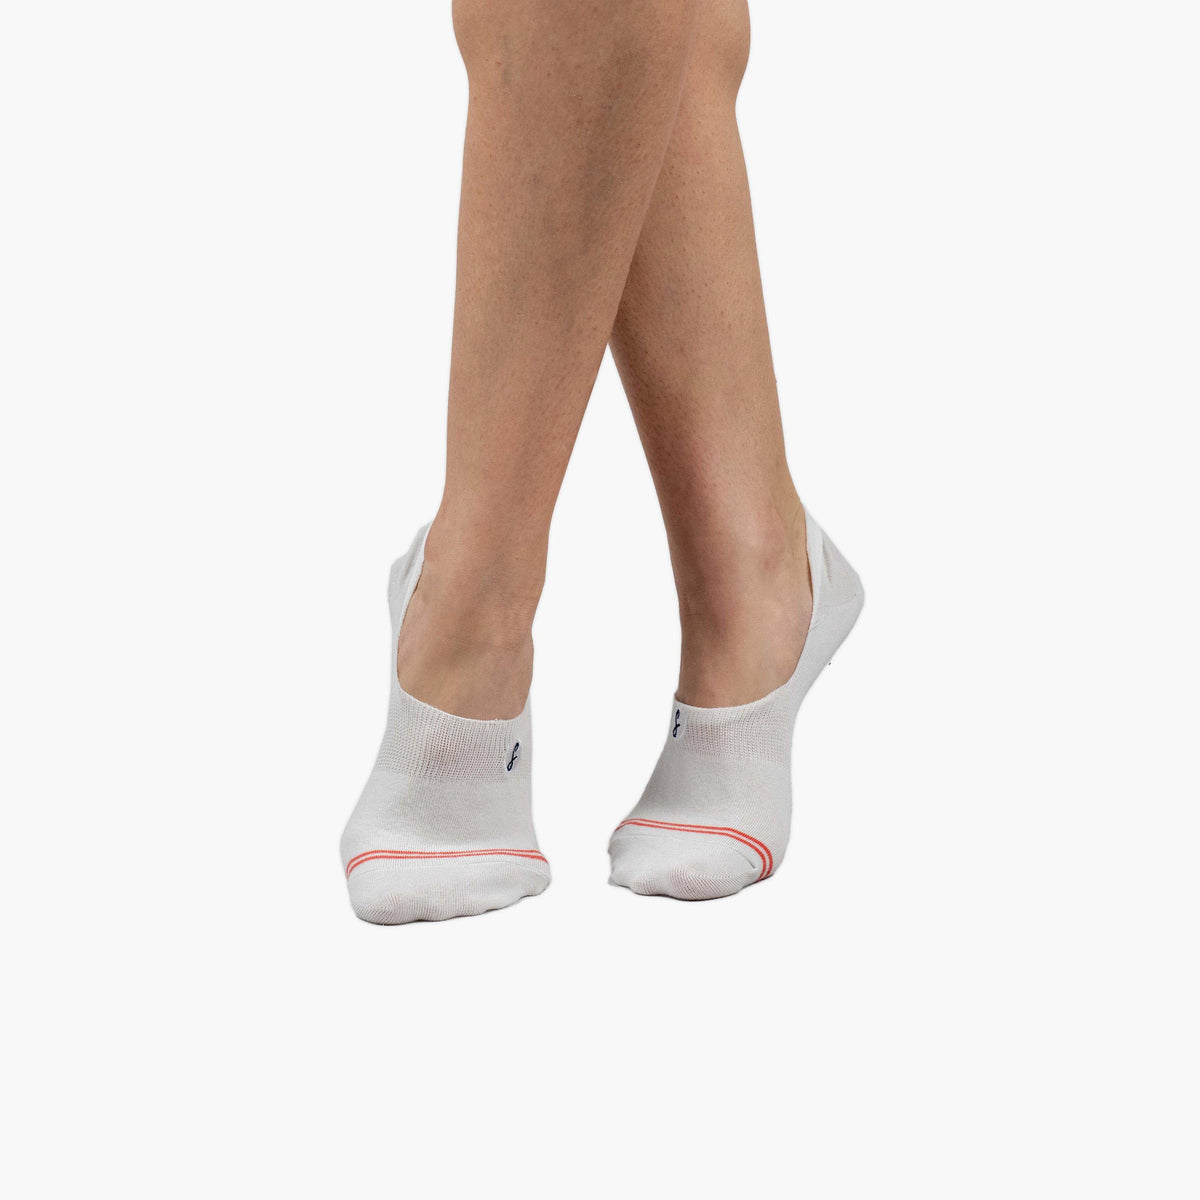 Plain Off-White Coral Striped Combed Cotton No-Show Swanky Socks - SwankySocks